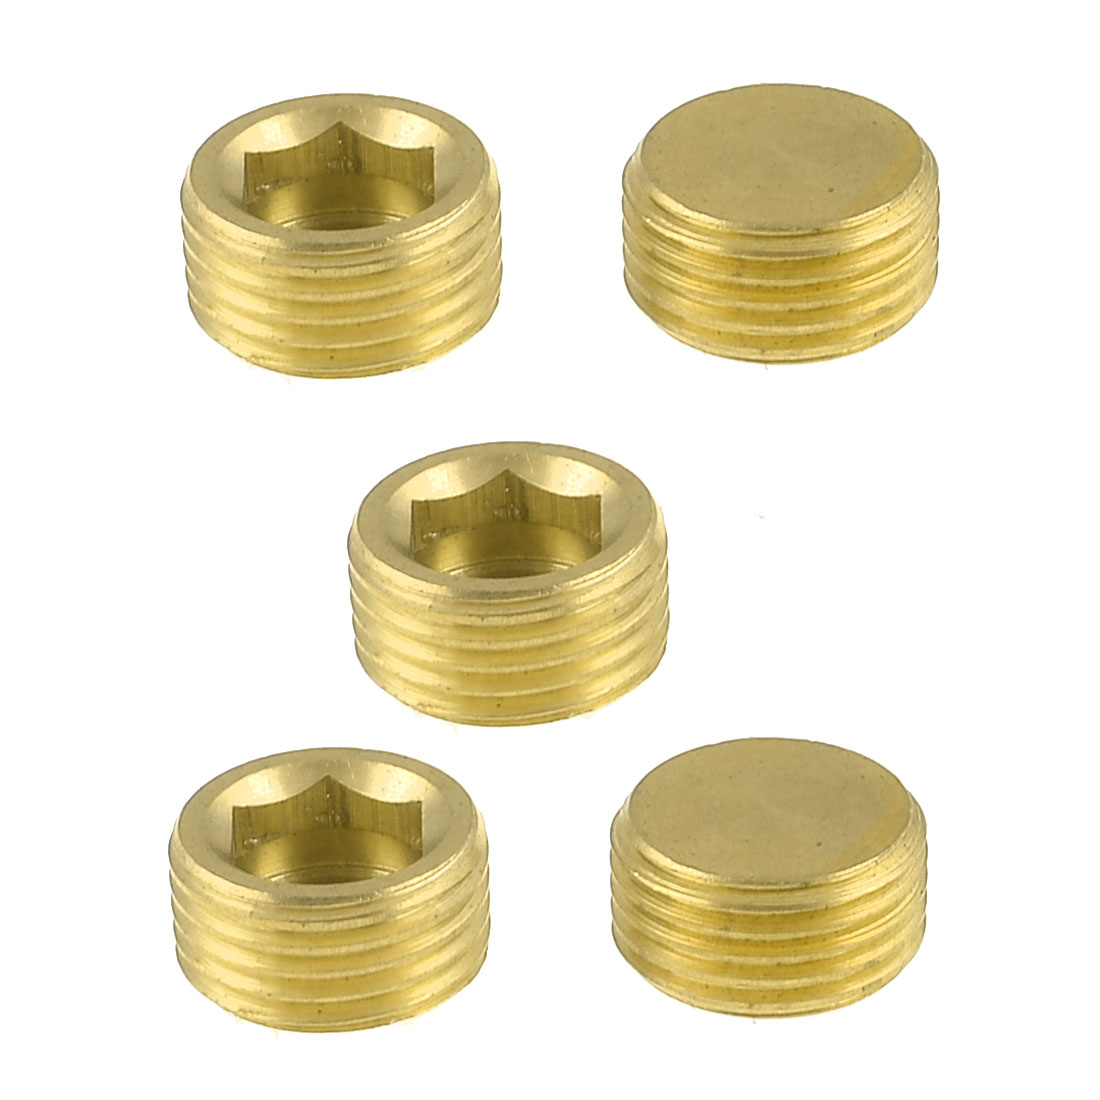 "5 Pcs Brass Internal Hex Head Socket 1/2"" PT Thread Pipe Connector Fitting"